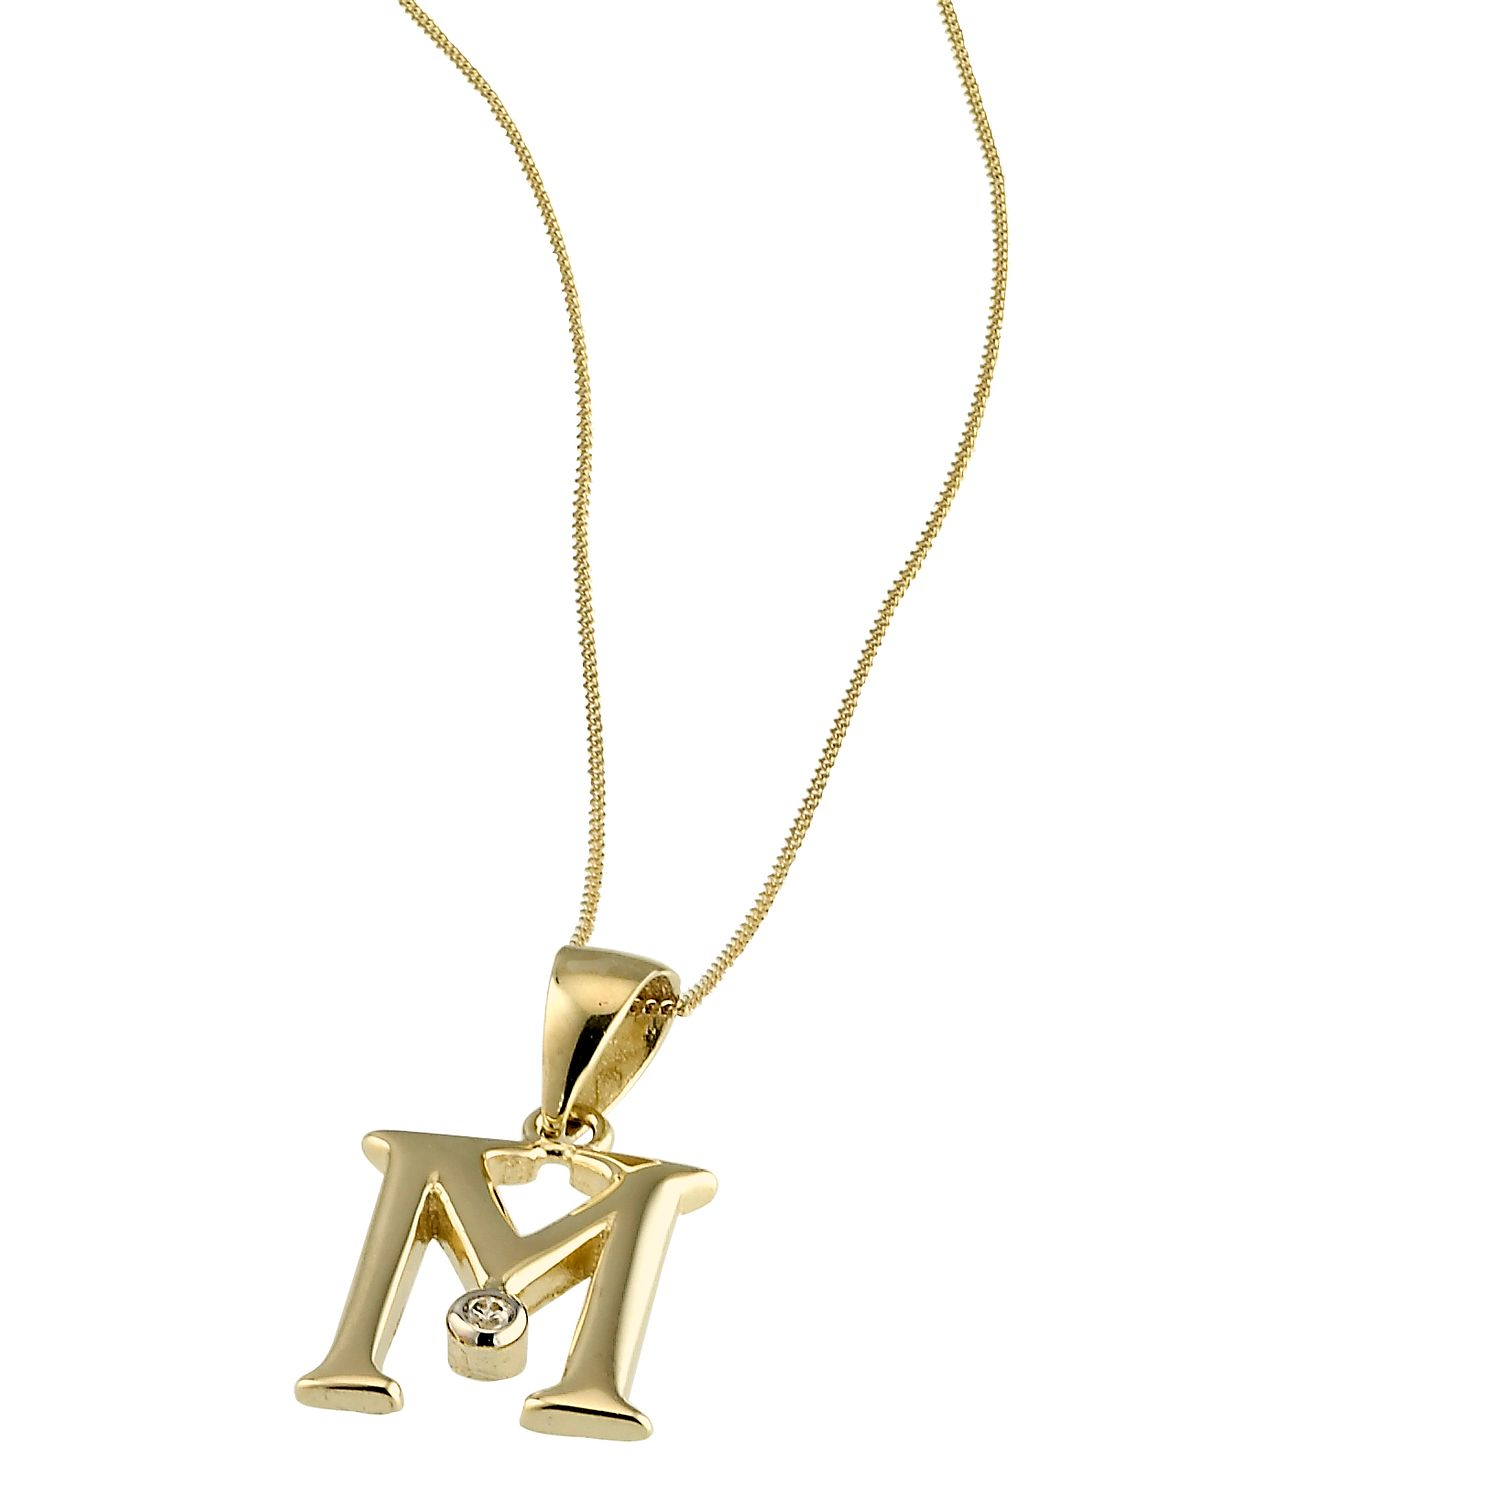 9ct Gold Cubic Zirconia Set Letter M 16 inches Pendant - Product number 4464788